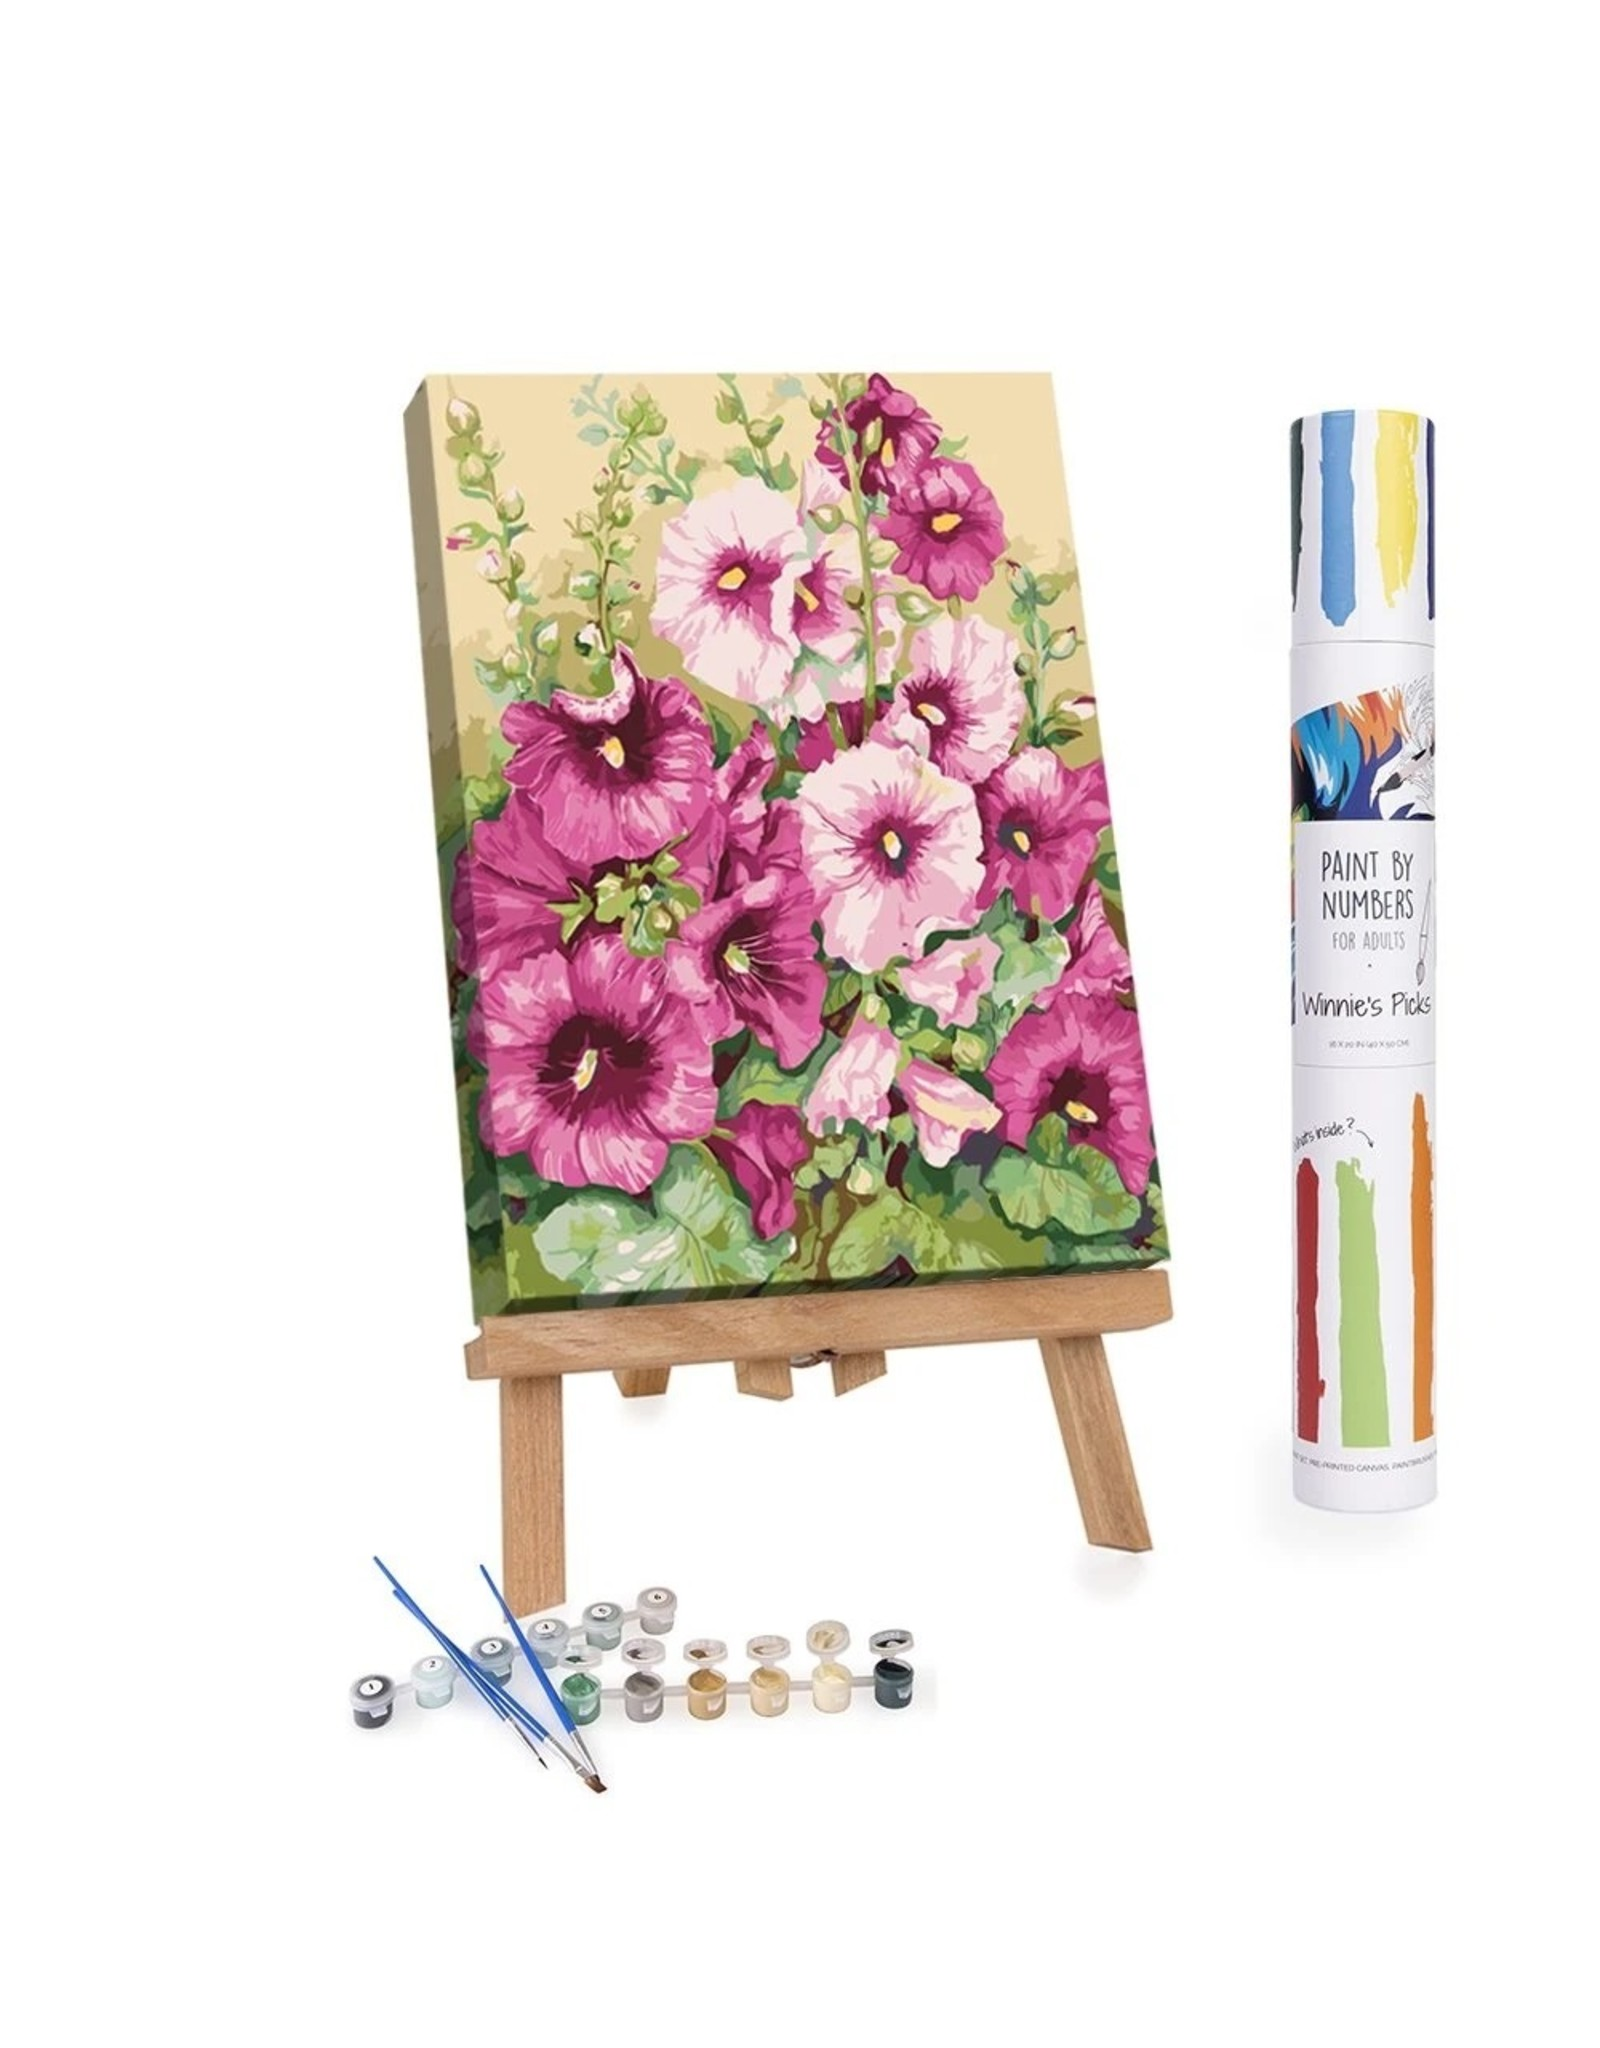 Relish Paint by Number Kits for Adults